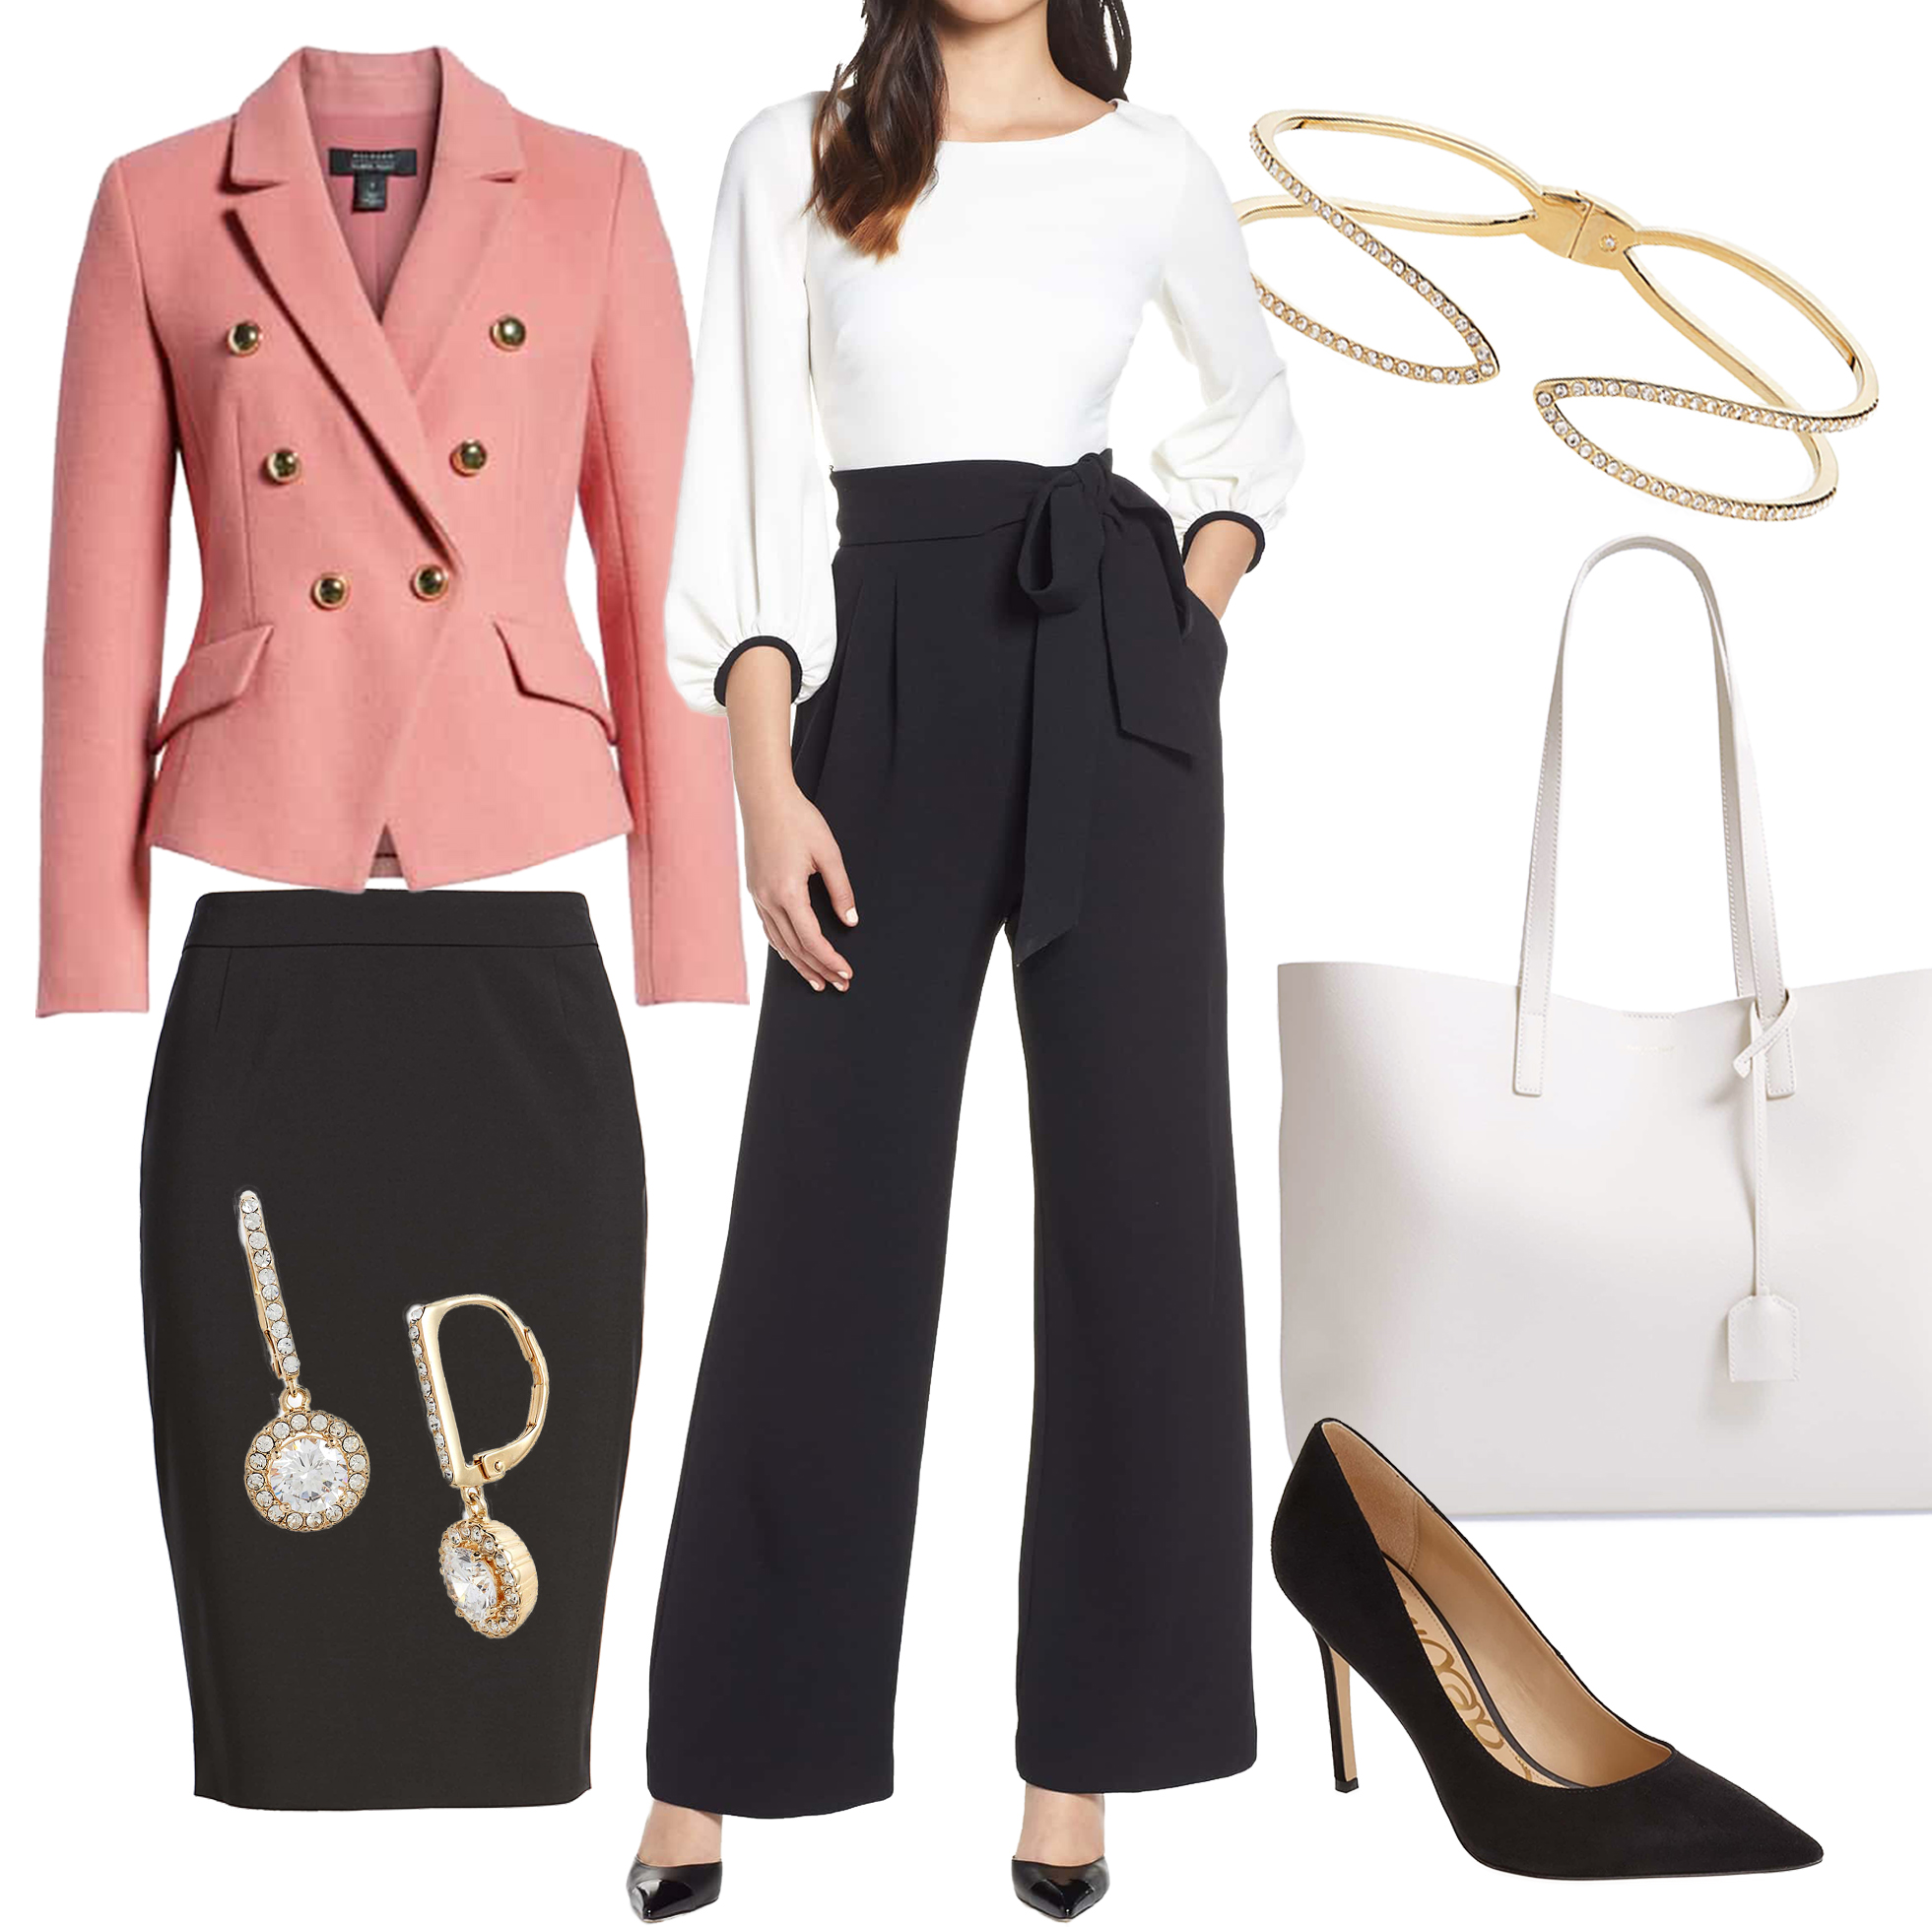 Smart Business - Go-To Pieces:-Dresses-Tailored jumpsuits and tops-Pointed flat or heel-Trendy blazer/jacket-Delicate jewelry-Higher necklines